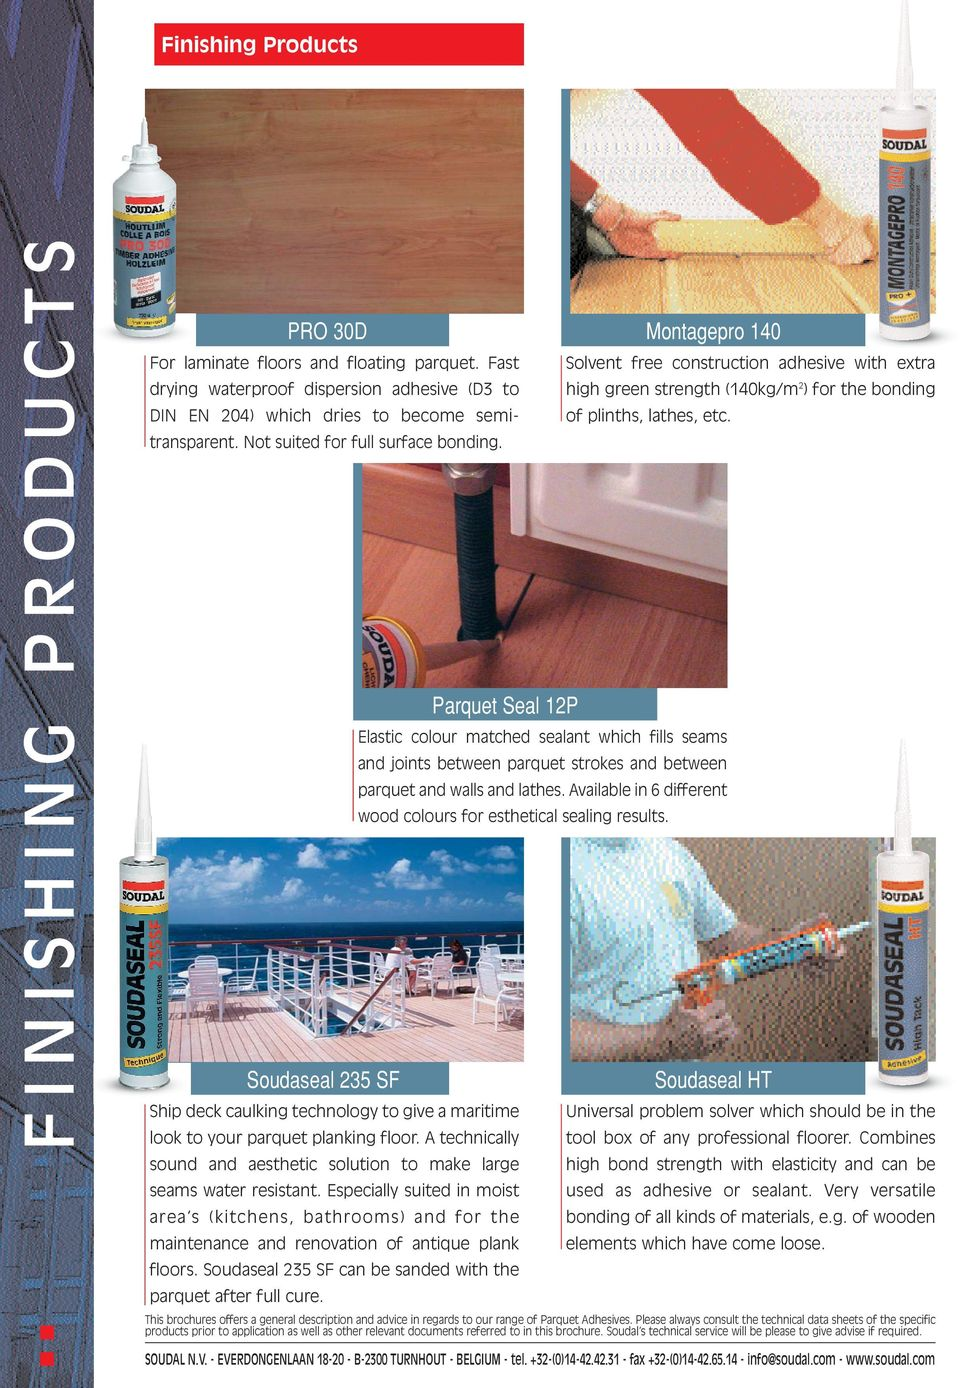 A technically sound and aesthetic solution to make large seams water resistant. Especially suited in moist area s (kitchens, bathrooms) and for the maintenance and renovation of antique plank floors.